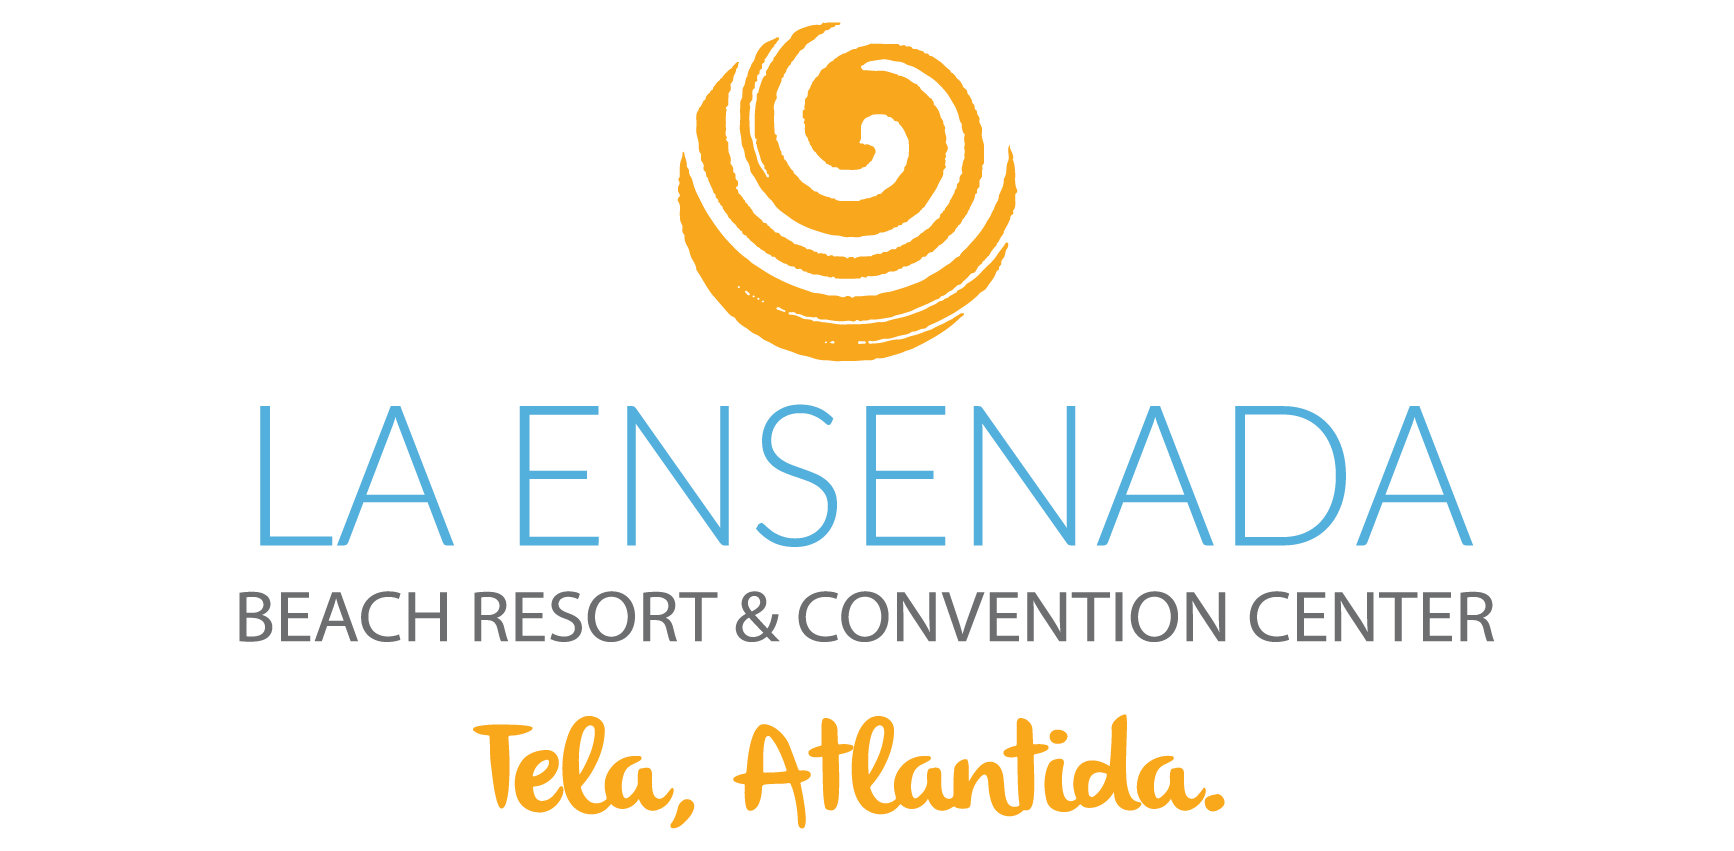 La Ensenada Beach & Resort